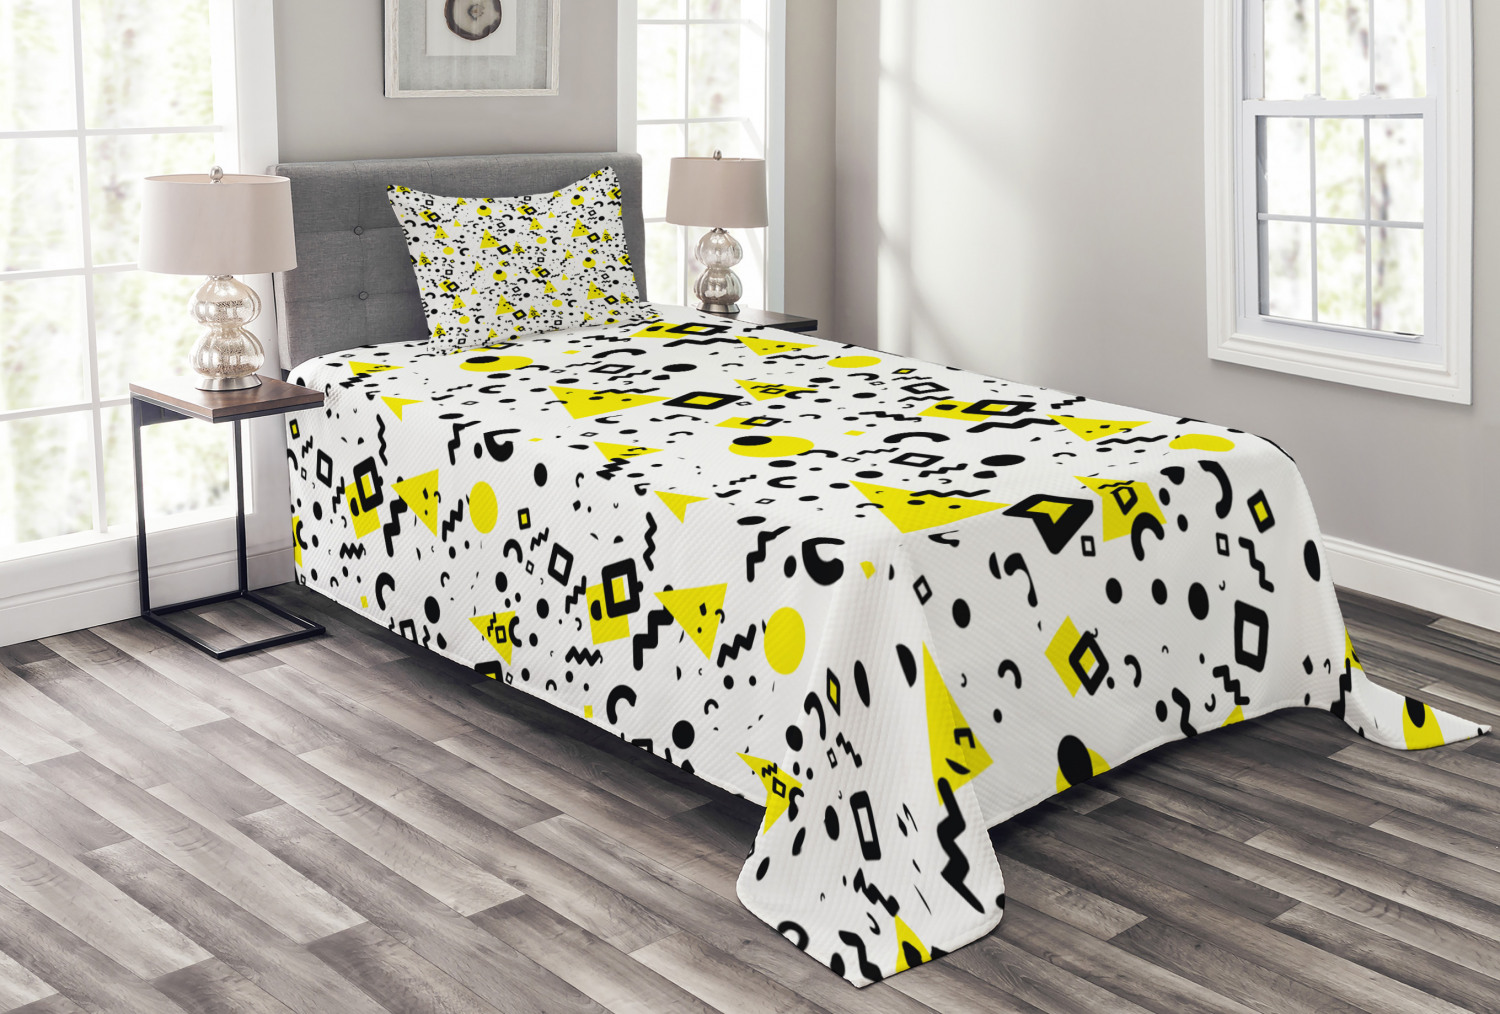 Soft Comfortable Top Sheet Decorative Bedding 1 Piece Twin Size Vivid Colored Composition of Fun Retro Cartoon in 80s and 90s Comic Style Multicolor Ambesonne Emoji Flat Sheet